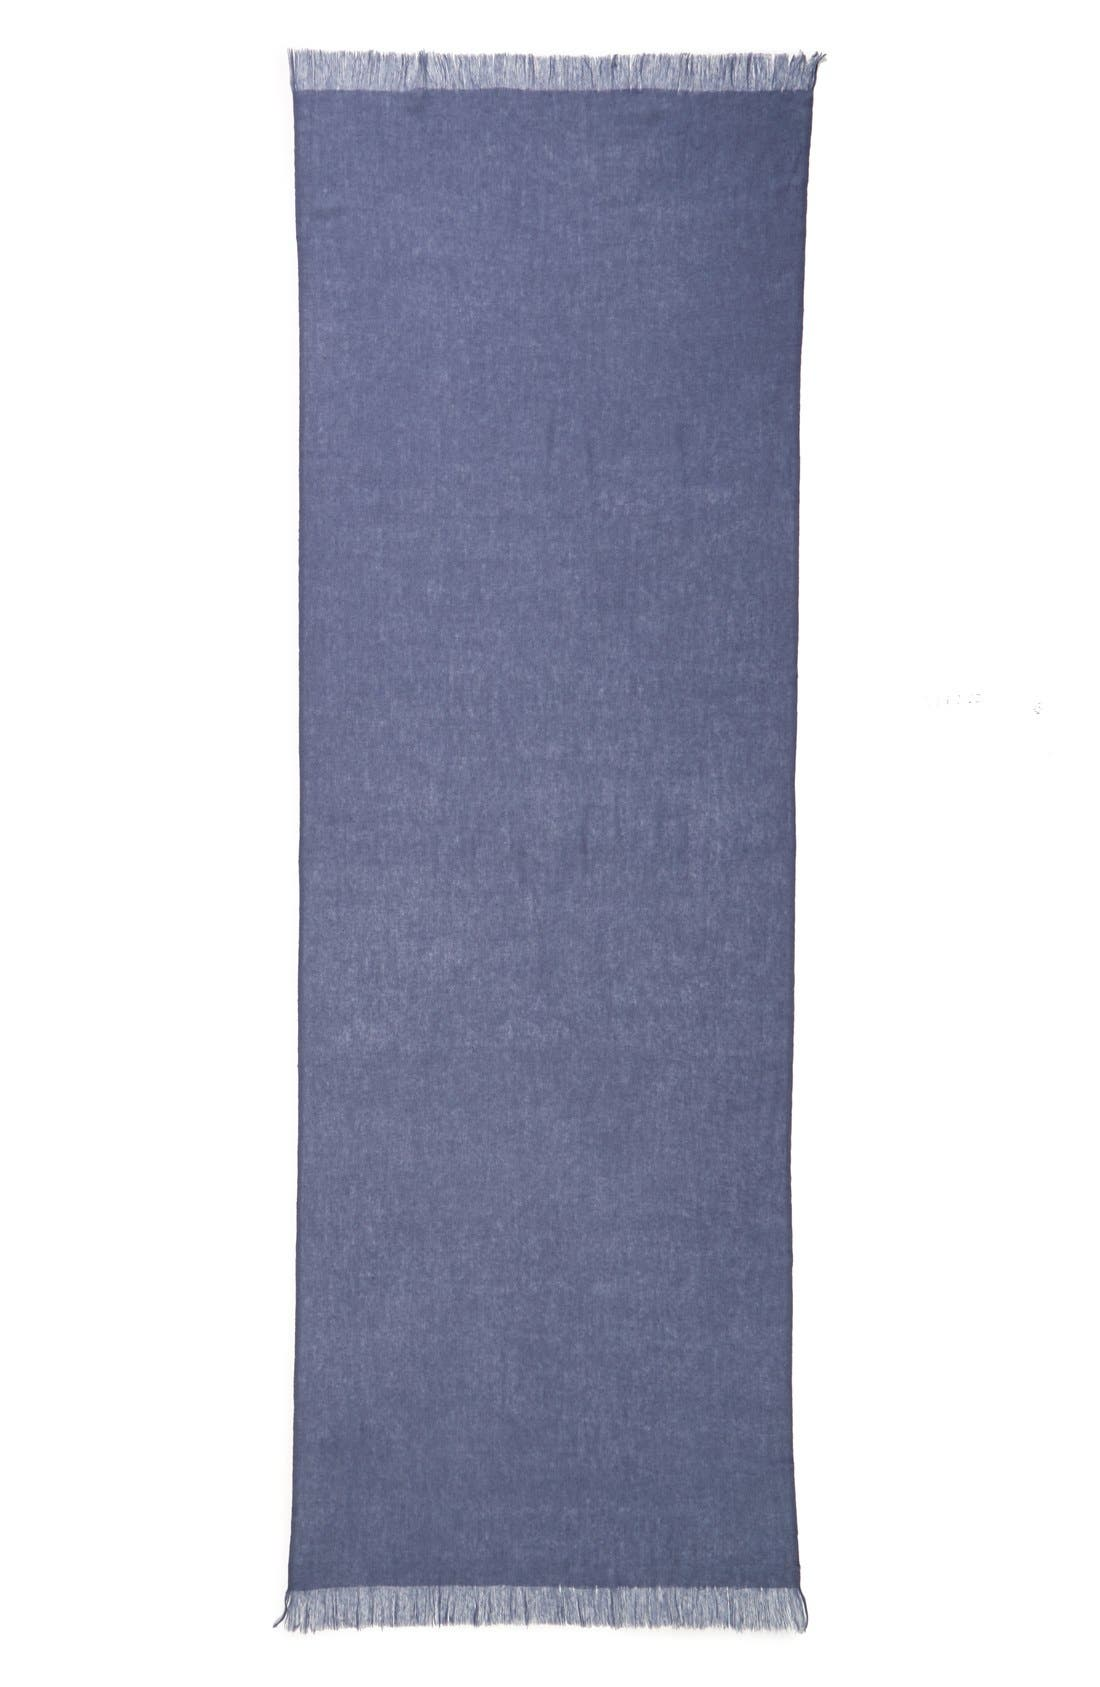 Caslon<sup>®</sup> Heathered Cashmere Gauze Scarf,                             Alternate thumbnail 19, color,